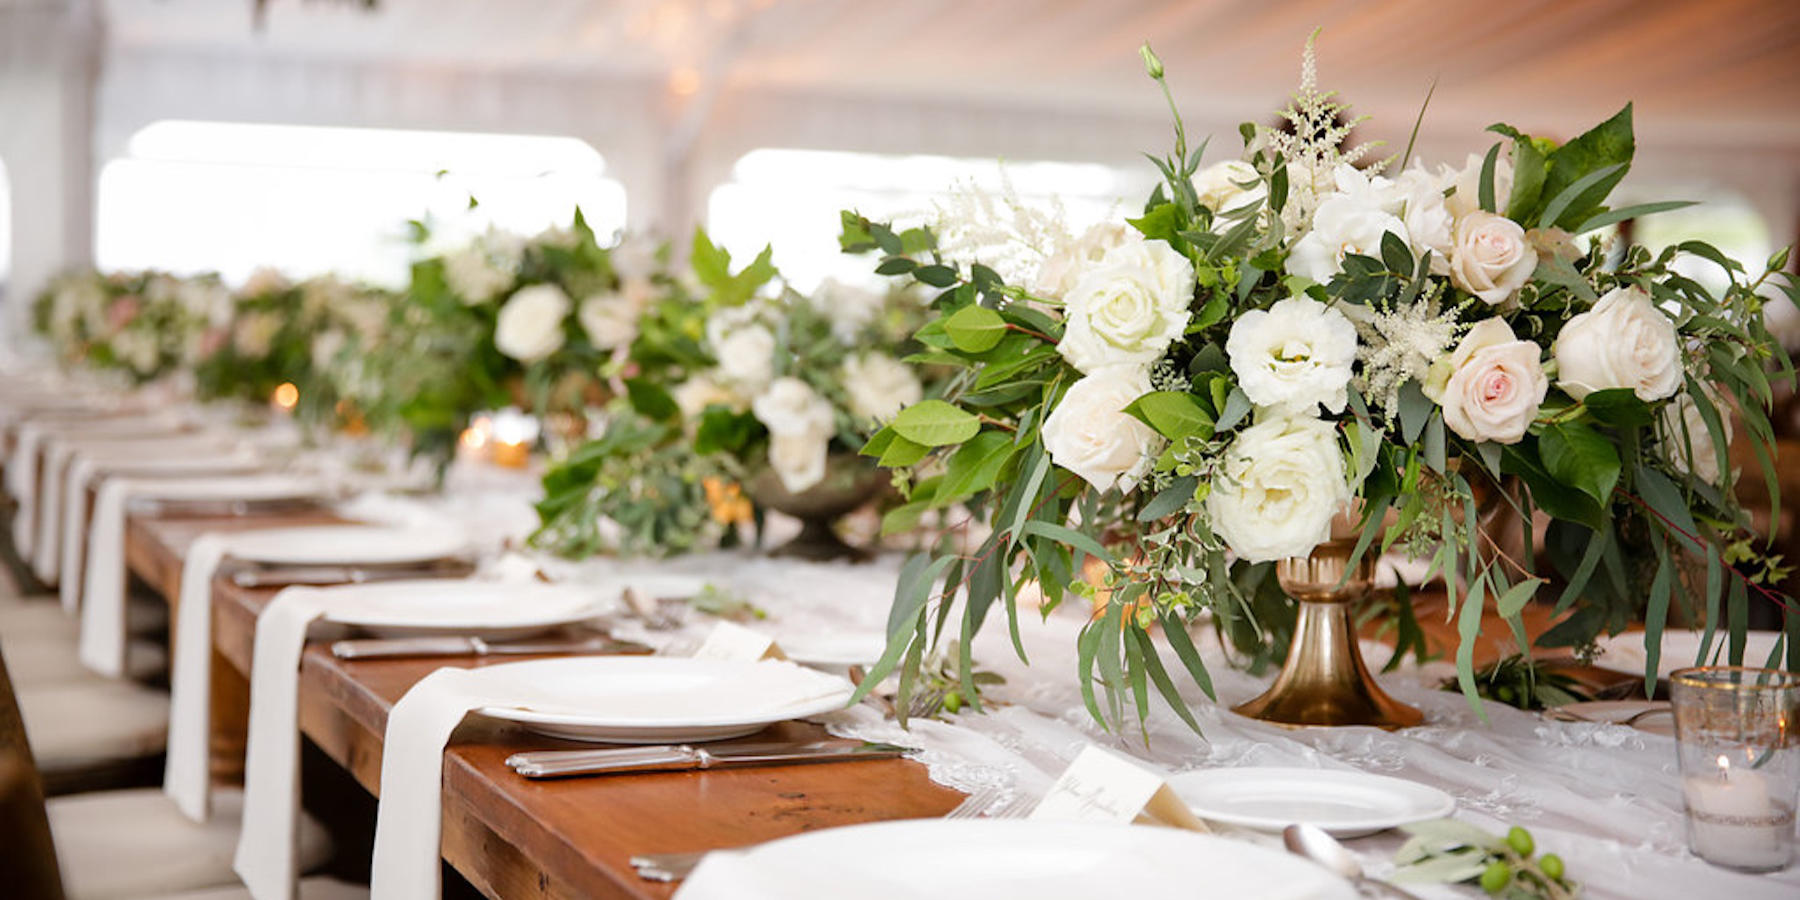 A wedding table, with gorgeous flowers arrangements on gold vases, and a neat table set up